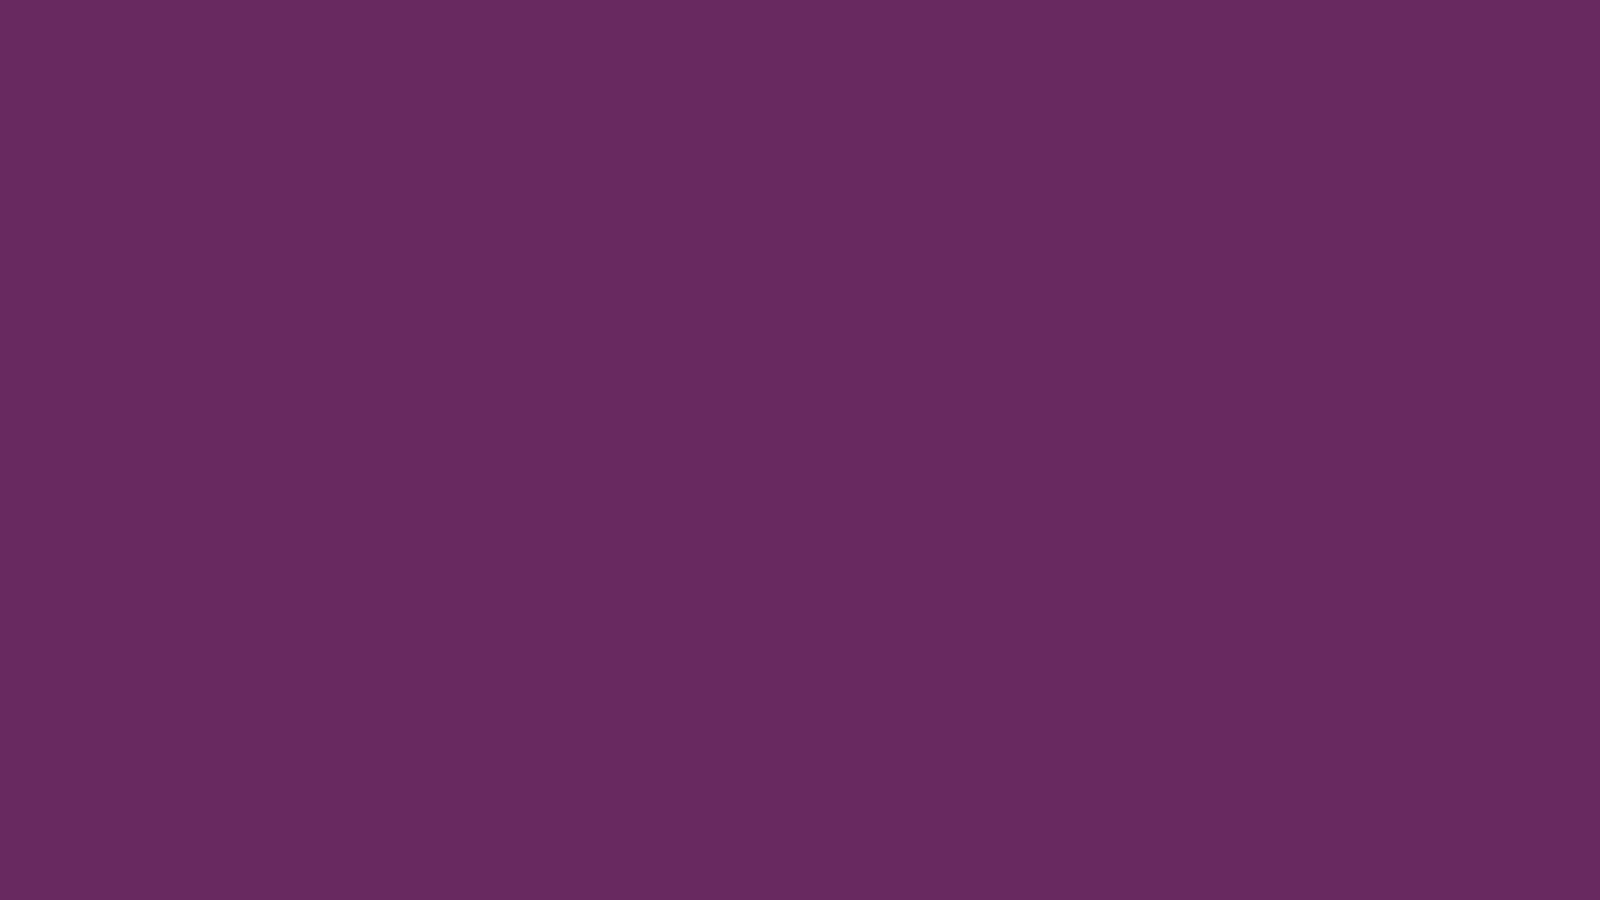 1600x900 Palatinate Purple Solid Color Background